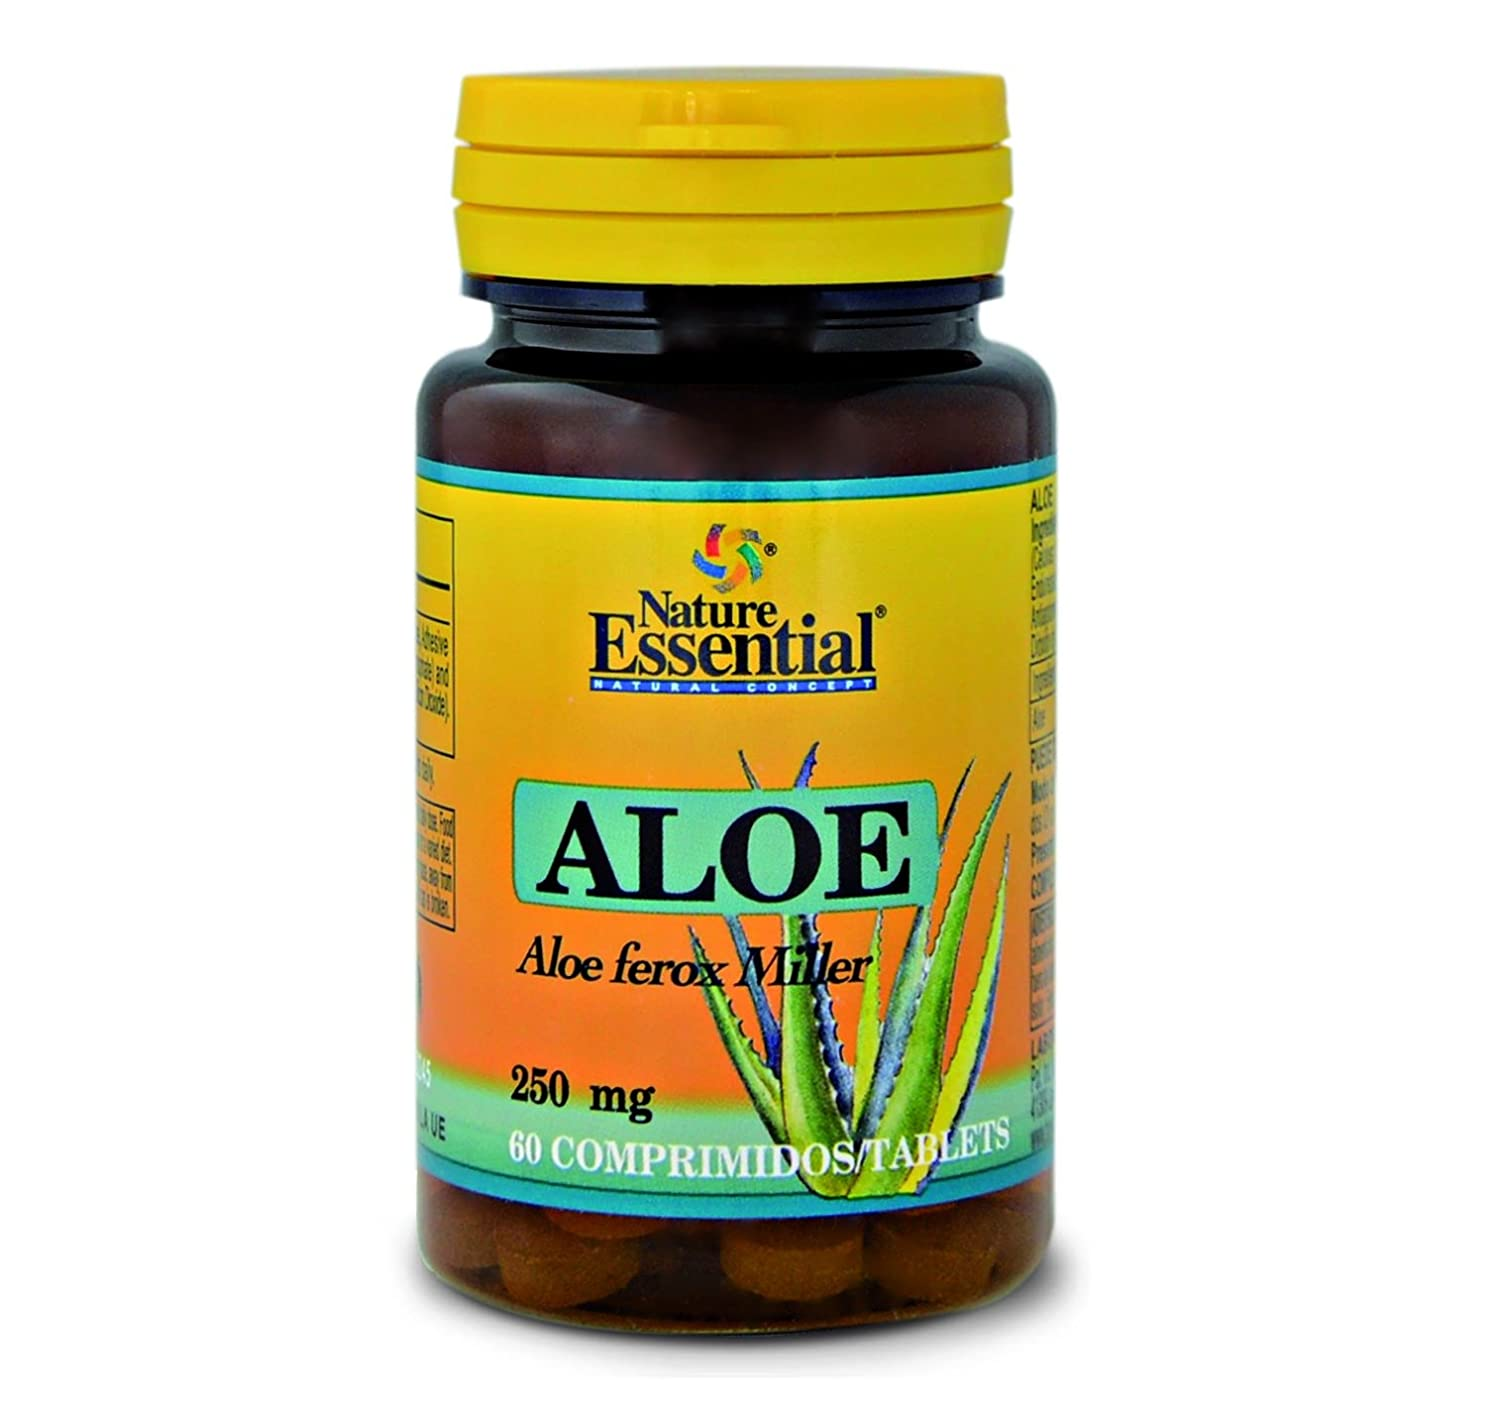 Nature Essential Aloe 250mg - 60 Comprimidos: Amazon.es: Salud y cuidado personal